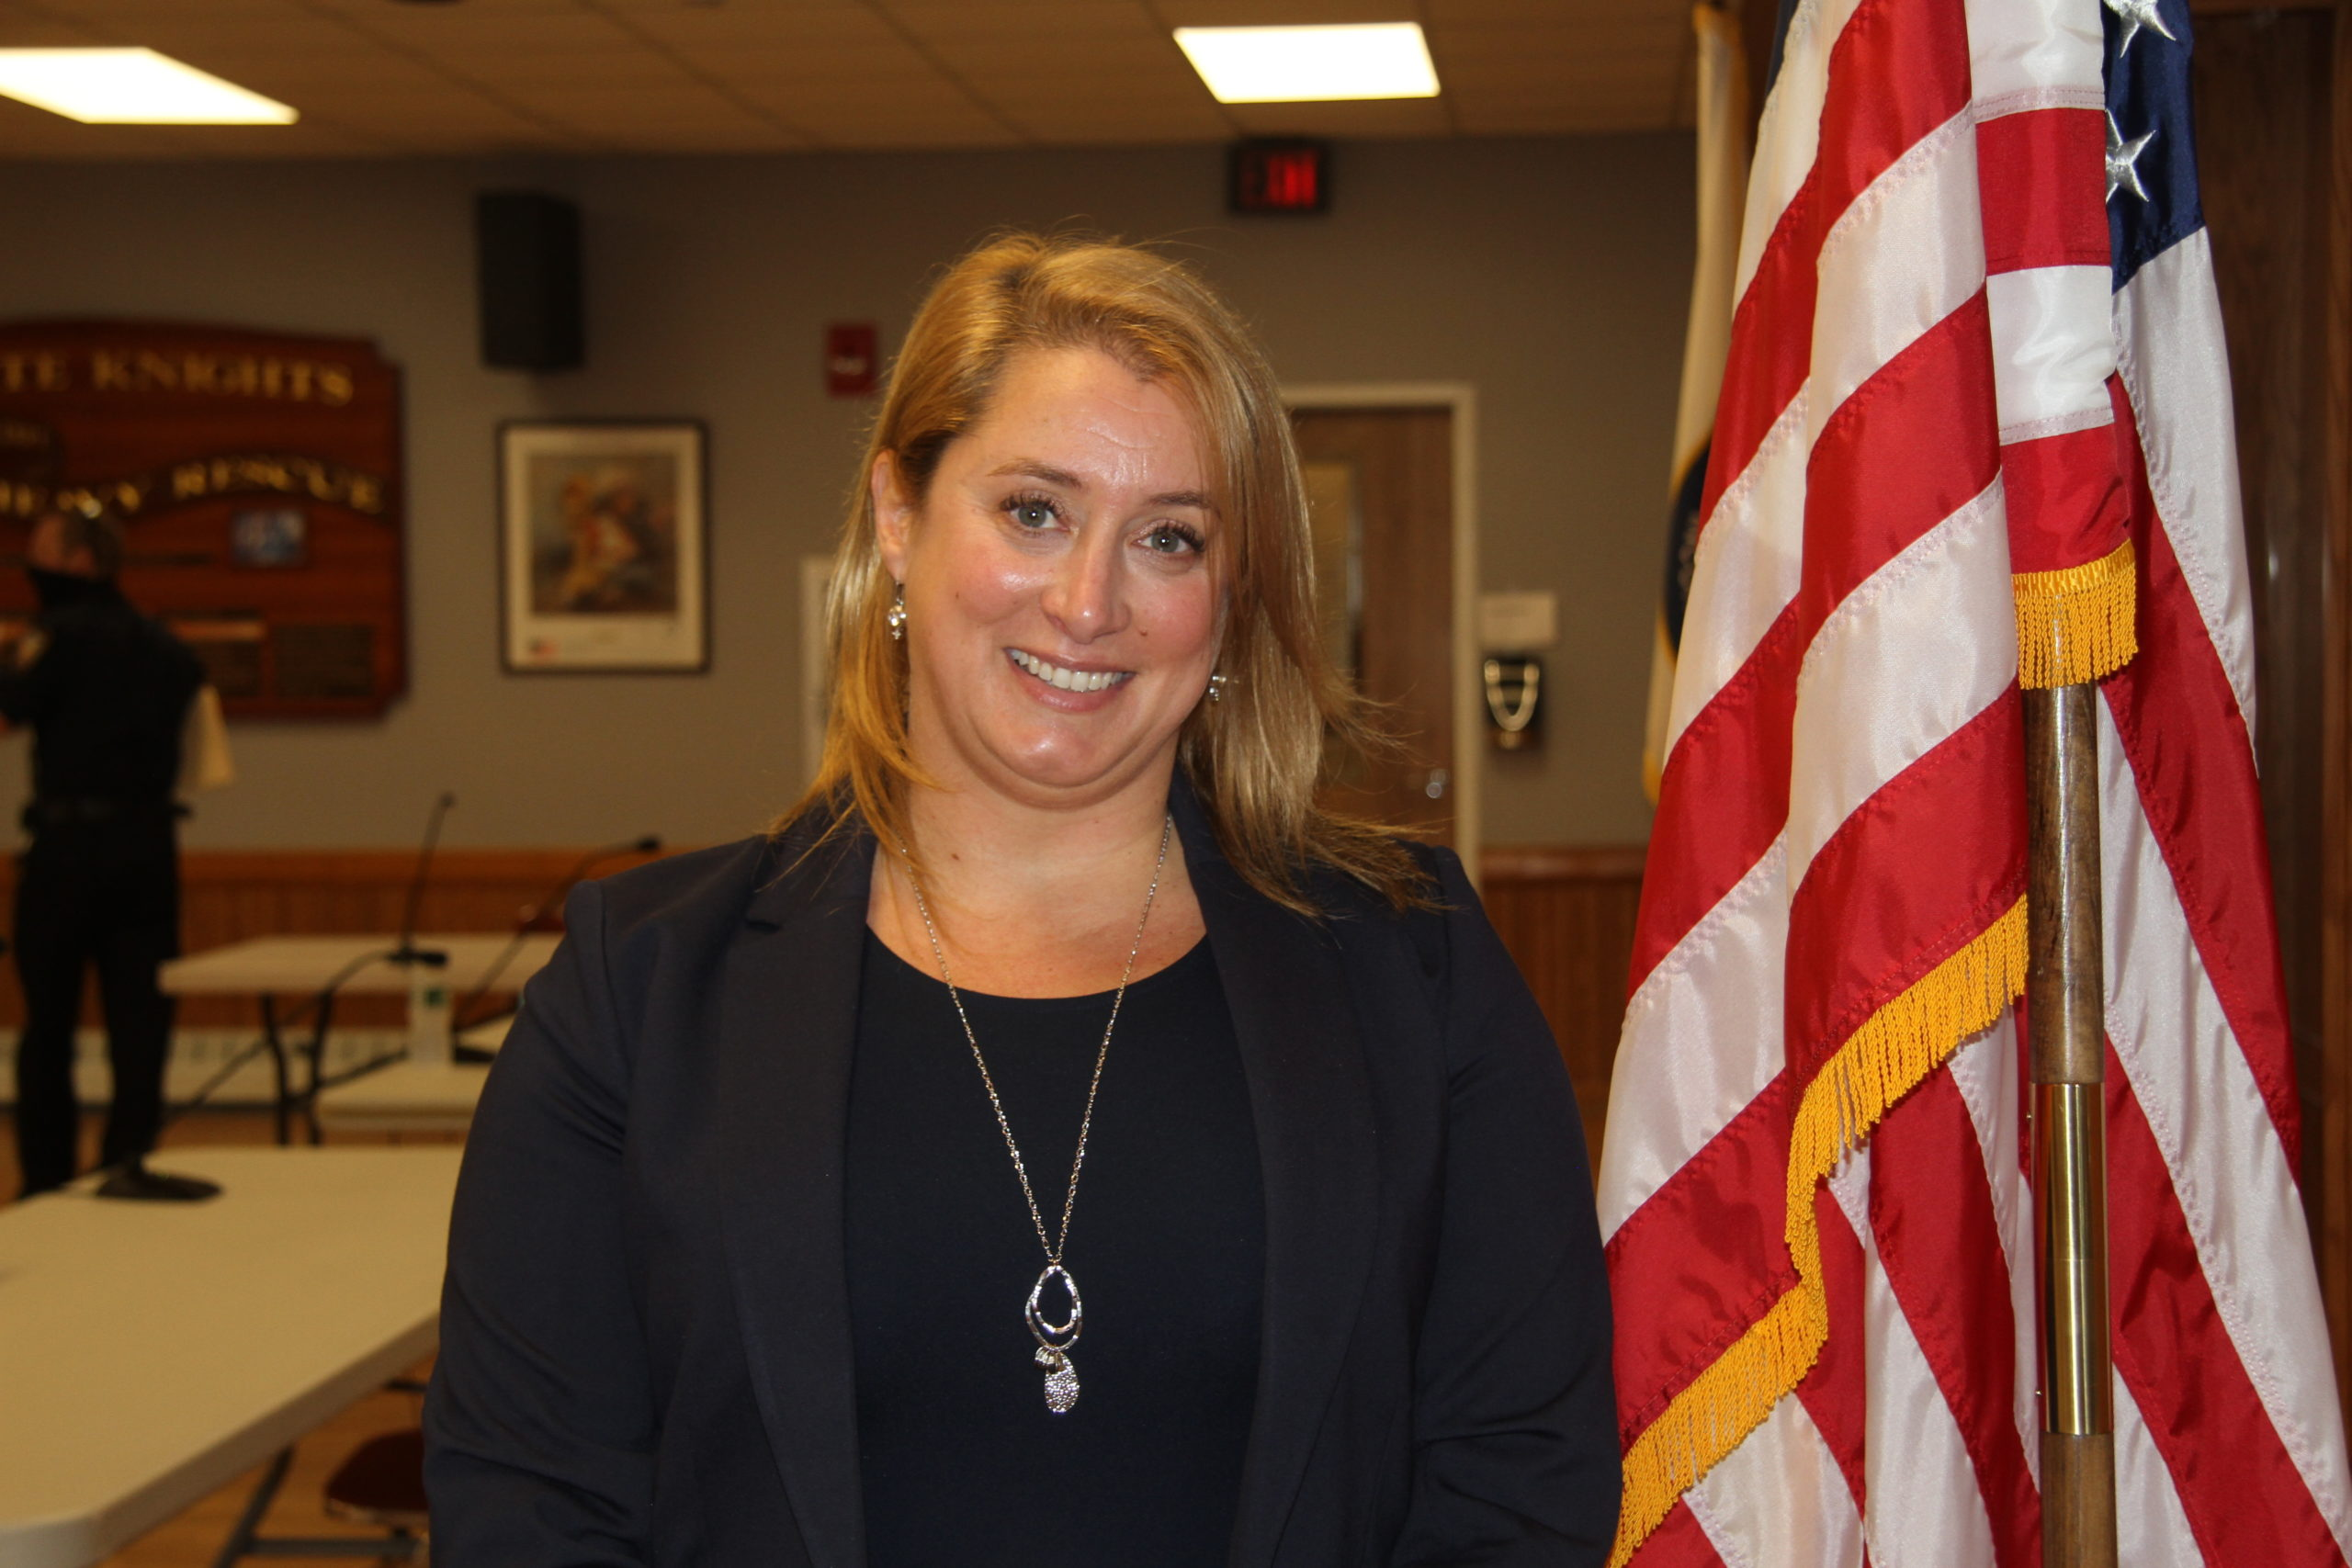 Rebecca Molinaro abruptly resigned as the village administrator last week, to take a newly vacant position with East Hampton Town, and Mayor Jerry Larsen announced at Friday's Village Board meeting that his former campaign manager, Marcos Baladron, would be filling the seat. The move was approved by the NewTown Party majority but opposed by Trustees Arthur Graham and Rose Brown, who said they had not even seen Mr. Baladron's resume.